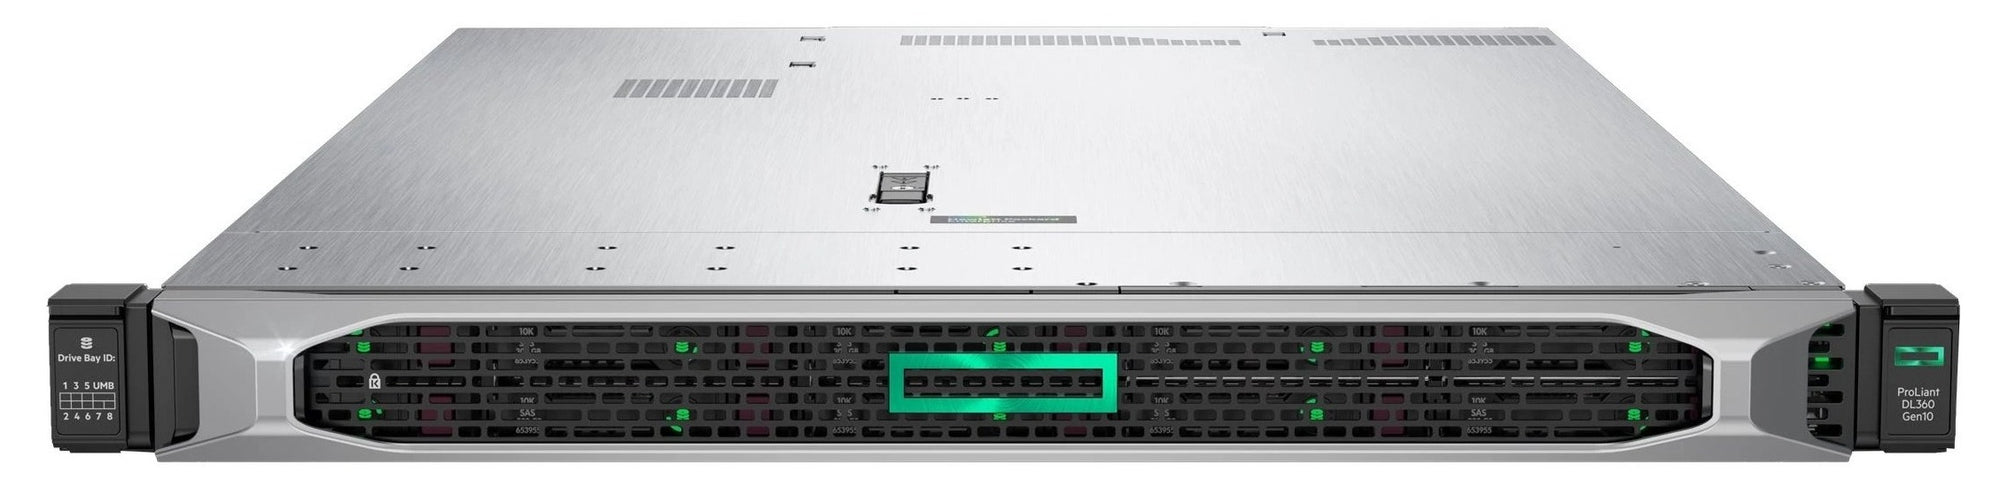 HPE ProLiant DL360 Gen10 CTO Rack Server